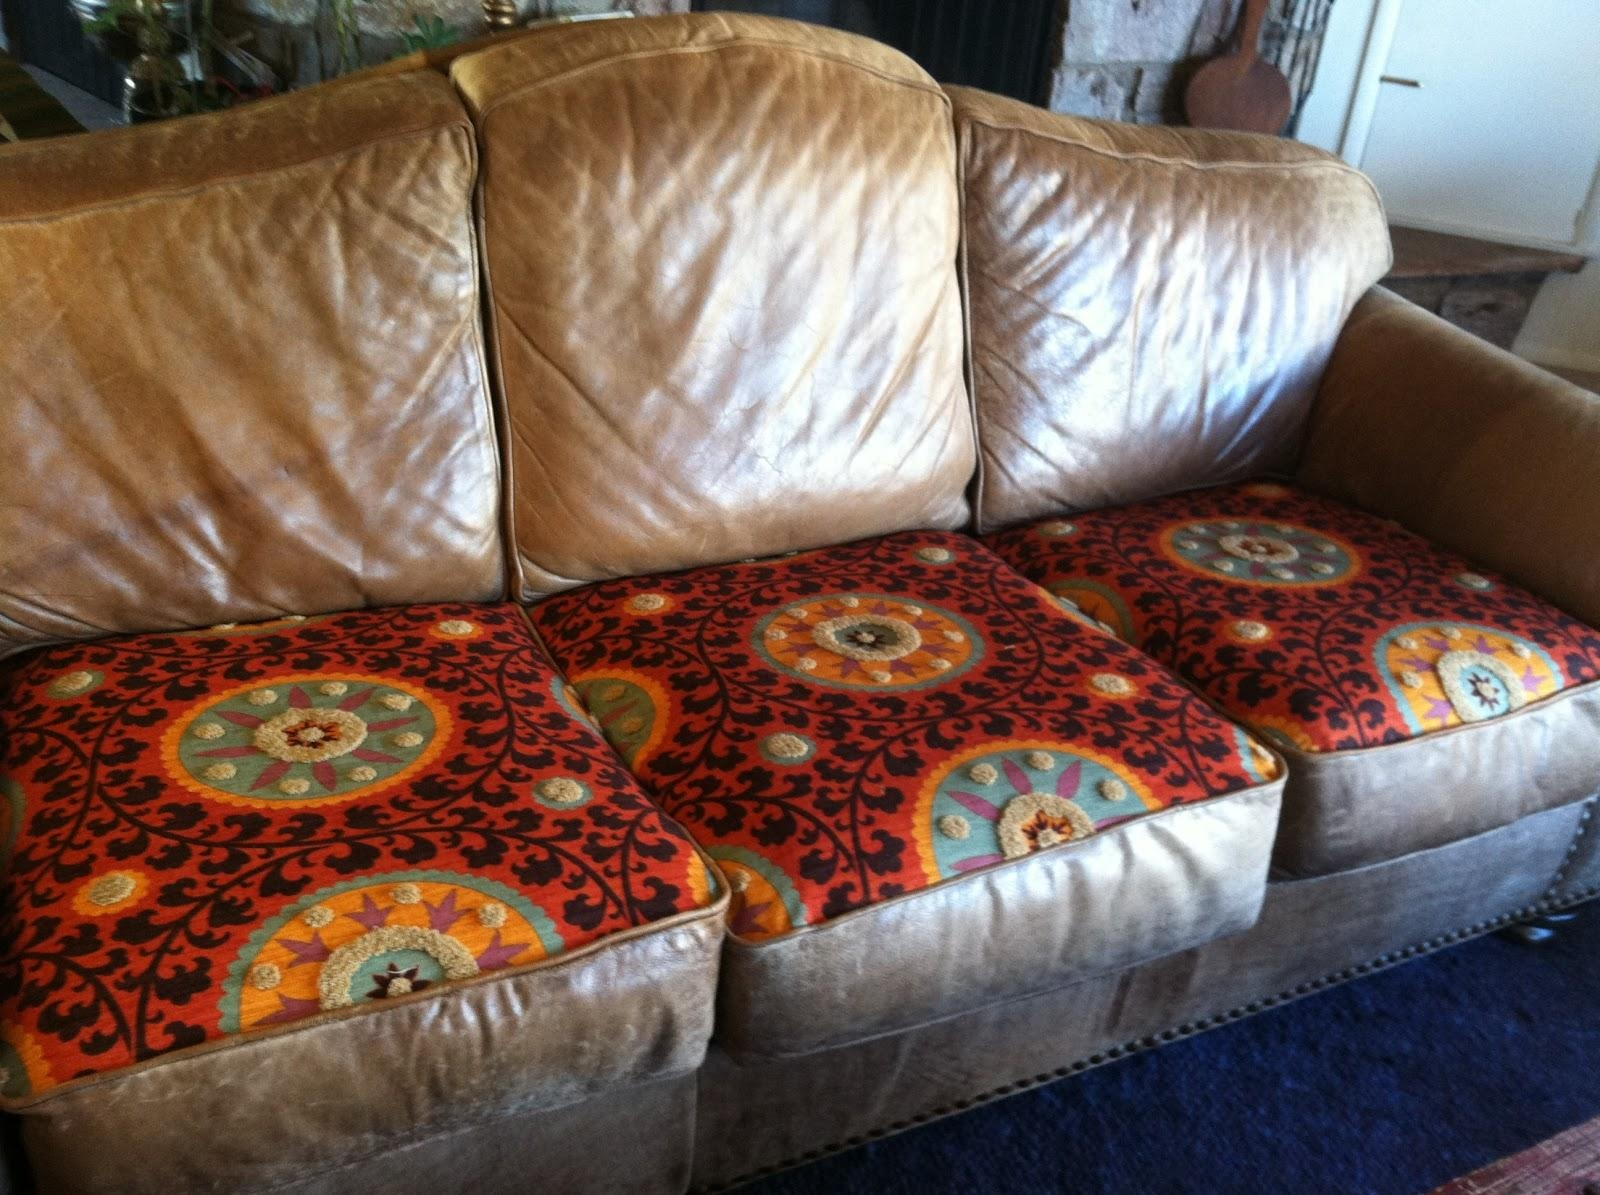 Reupholstering sofa cushions mesmerizing reupholster for Cushions for leather sofas